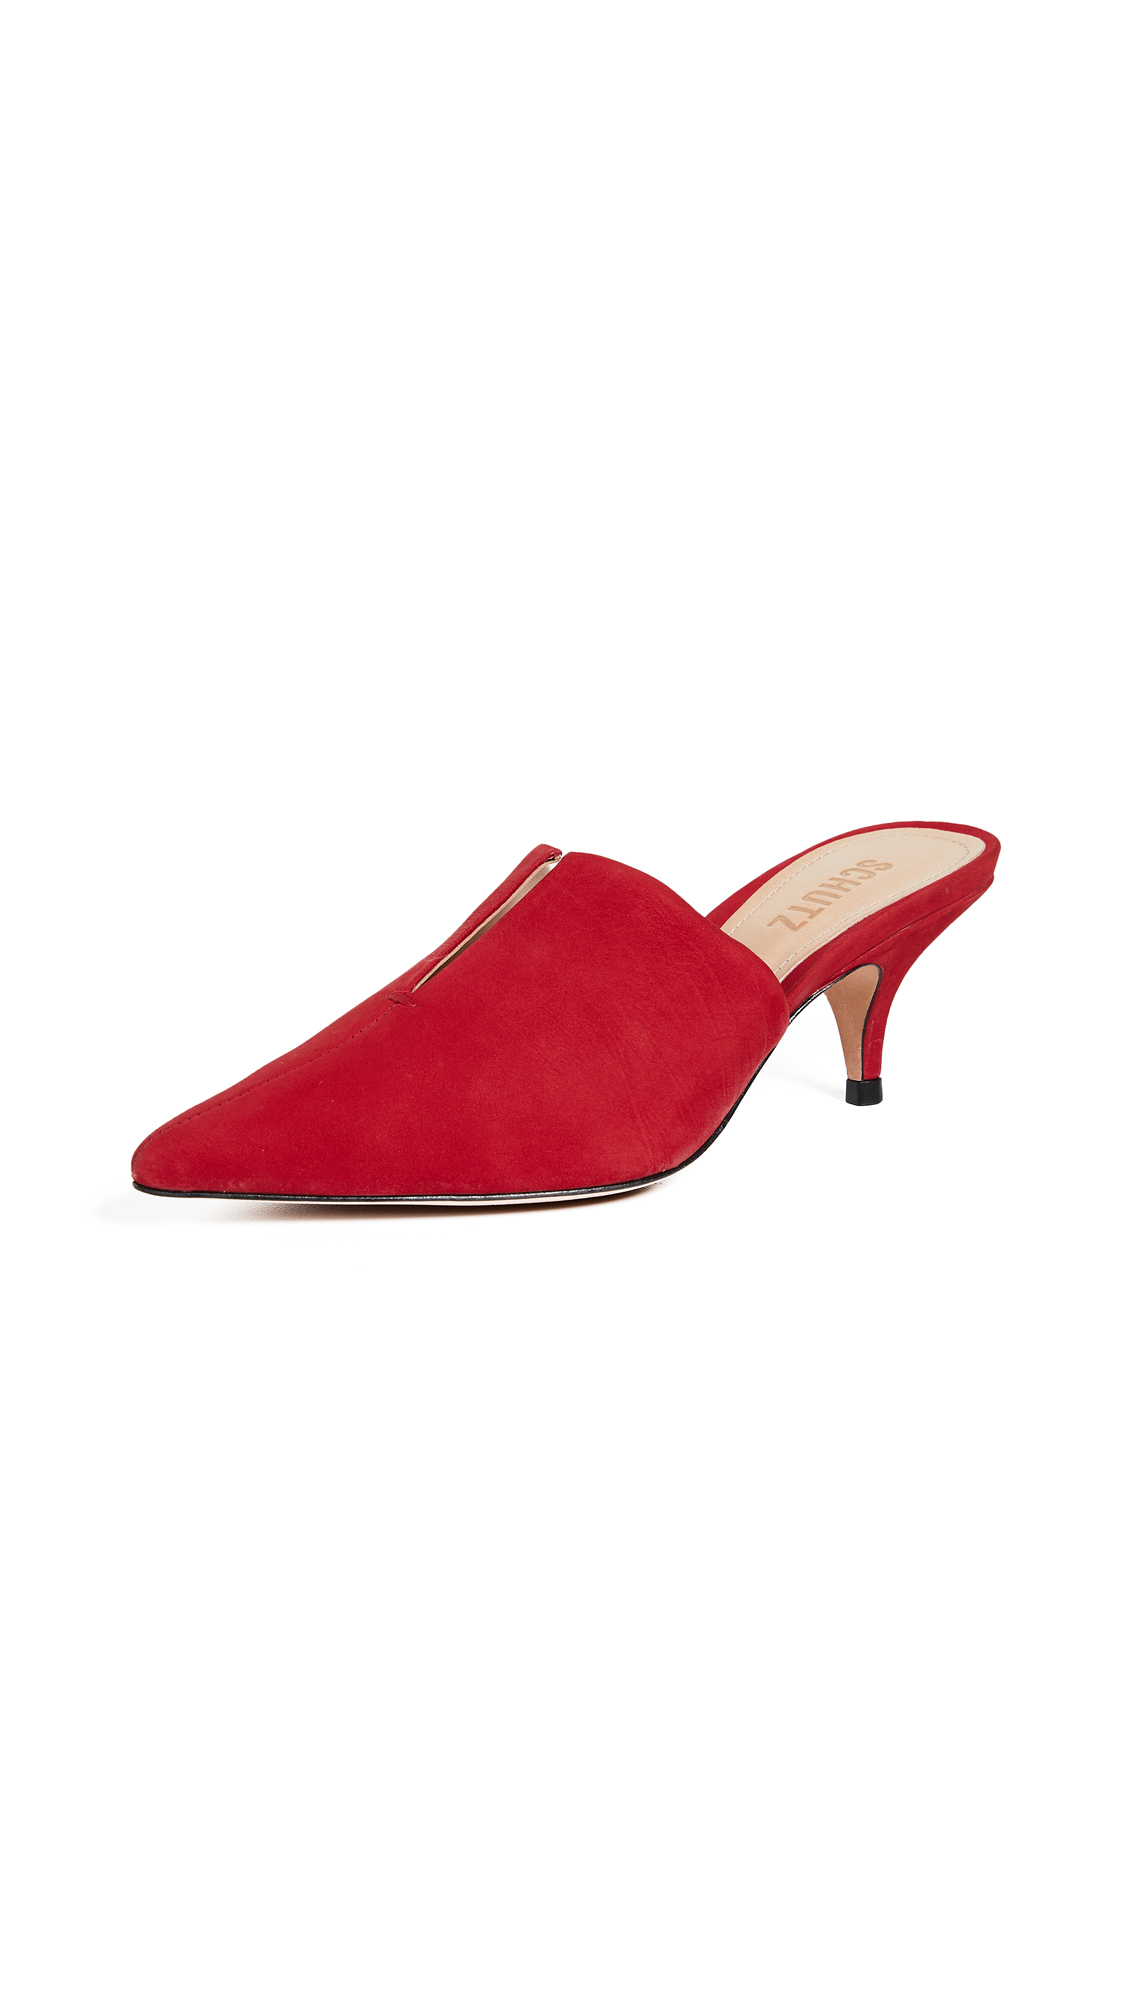 Schutz Ivna Kitten Heel Mules - Club Red